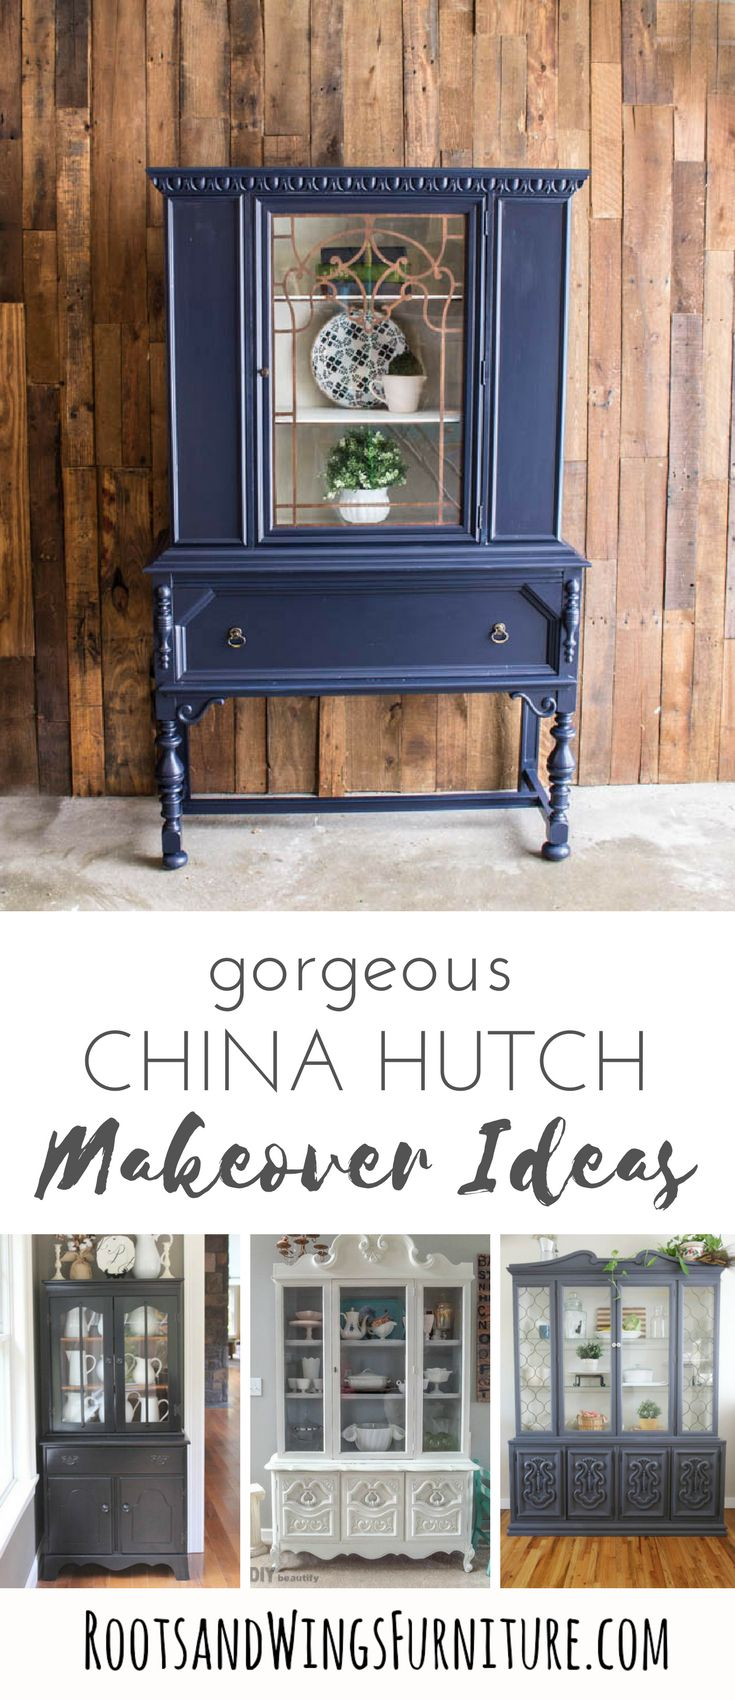 A round up of painted hutches to inspire you to grab a brush and get to work. Painted hutch makeover ideas for your home! #paintedfurniture #hutch #makeover #powerofpaint #rootsandwings #hutchmakeover #farmhouse #painted #paint #diy